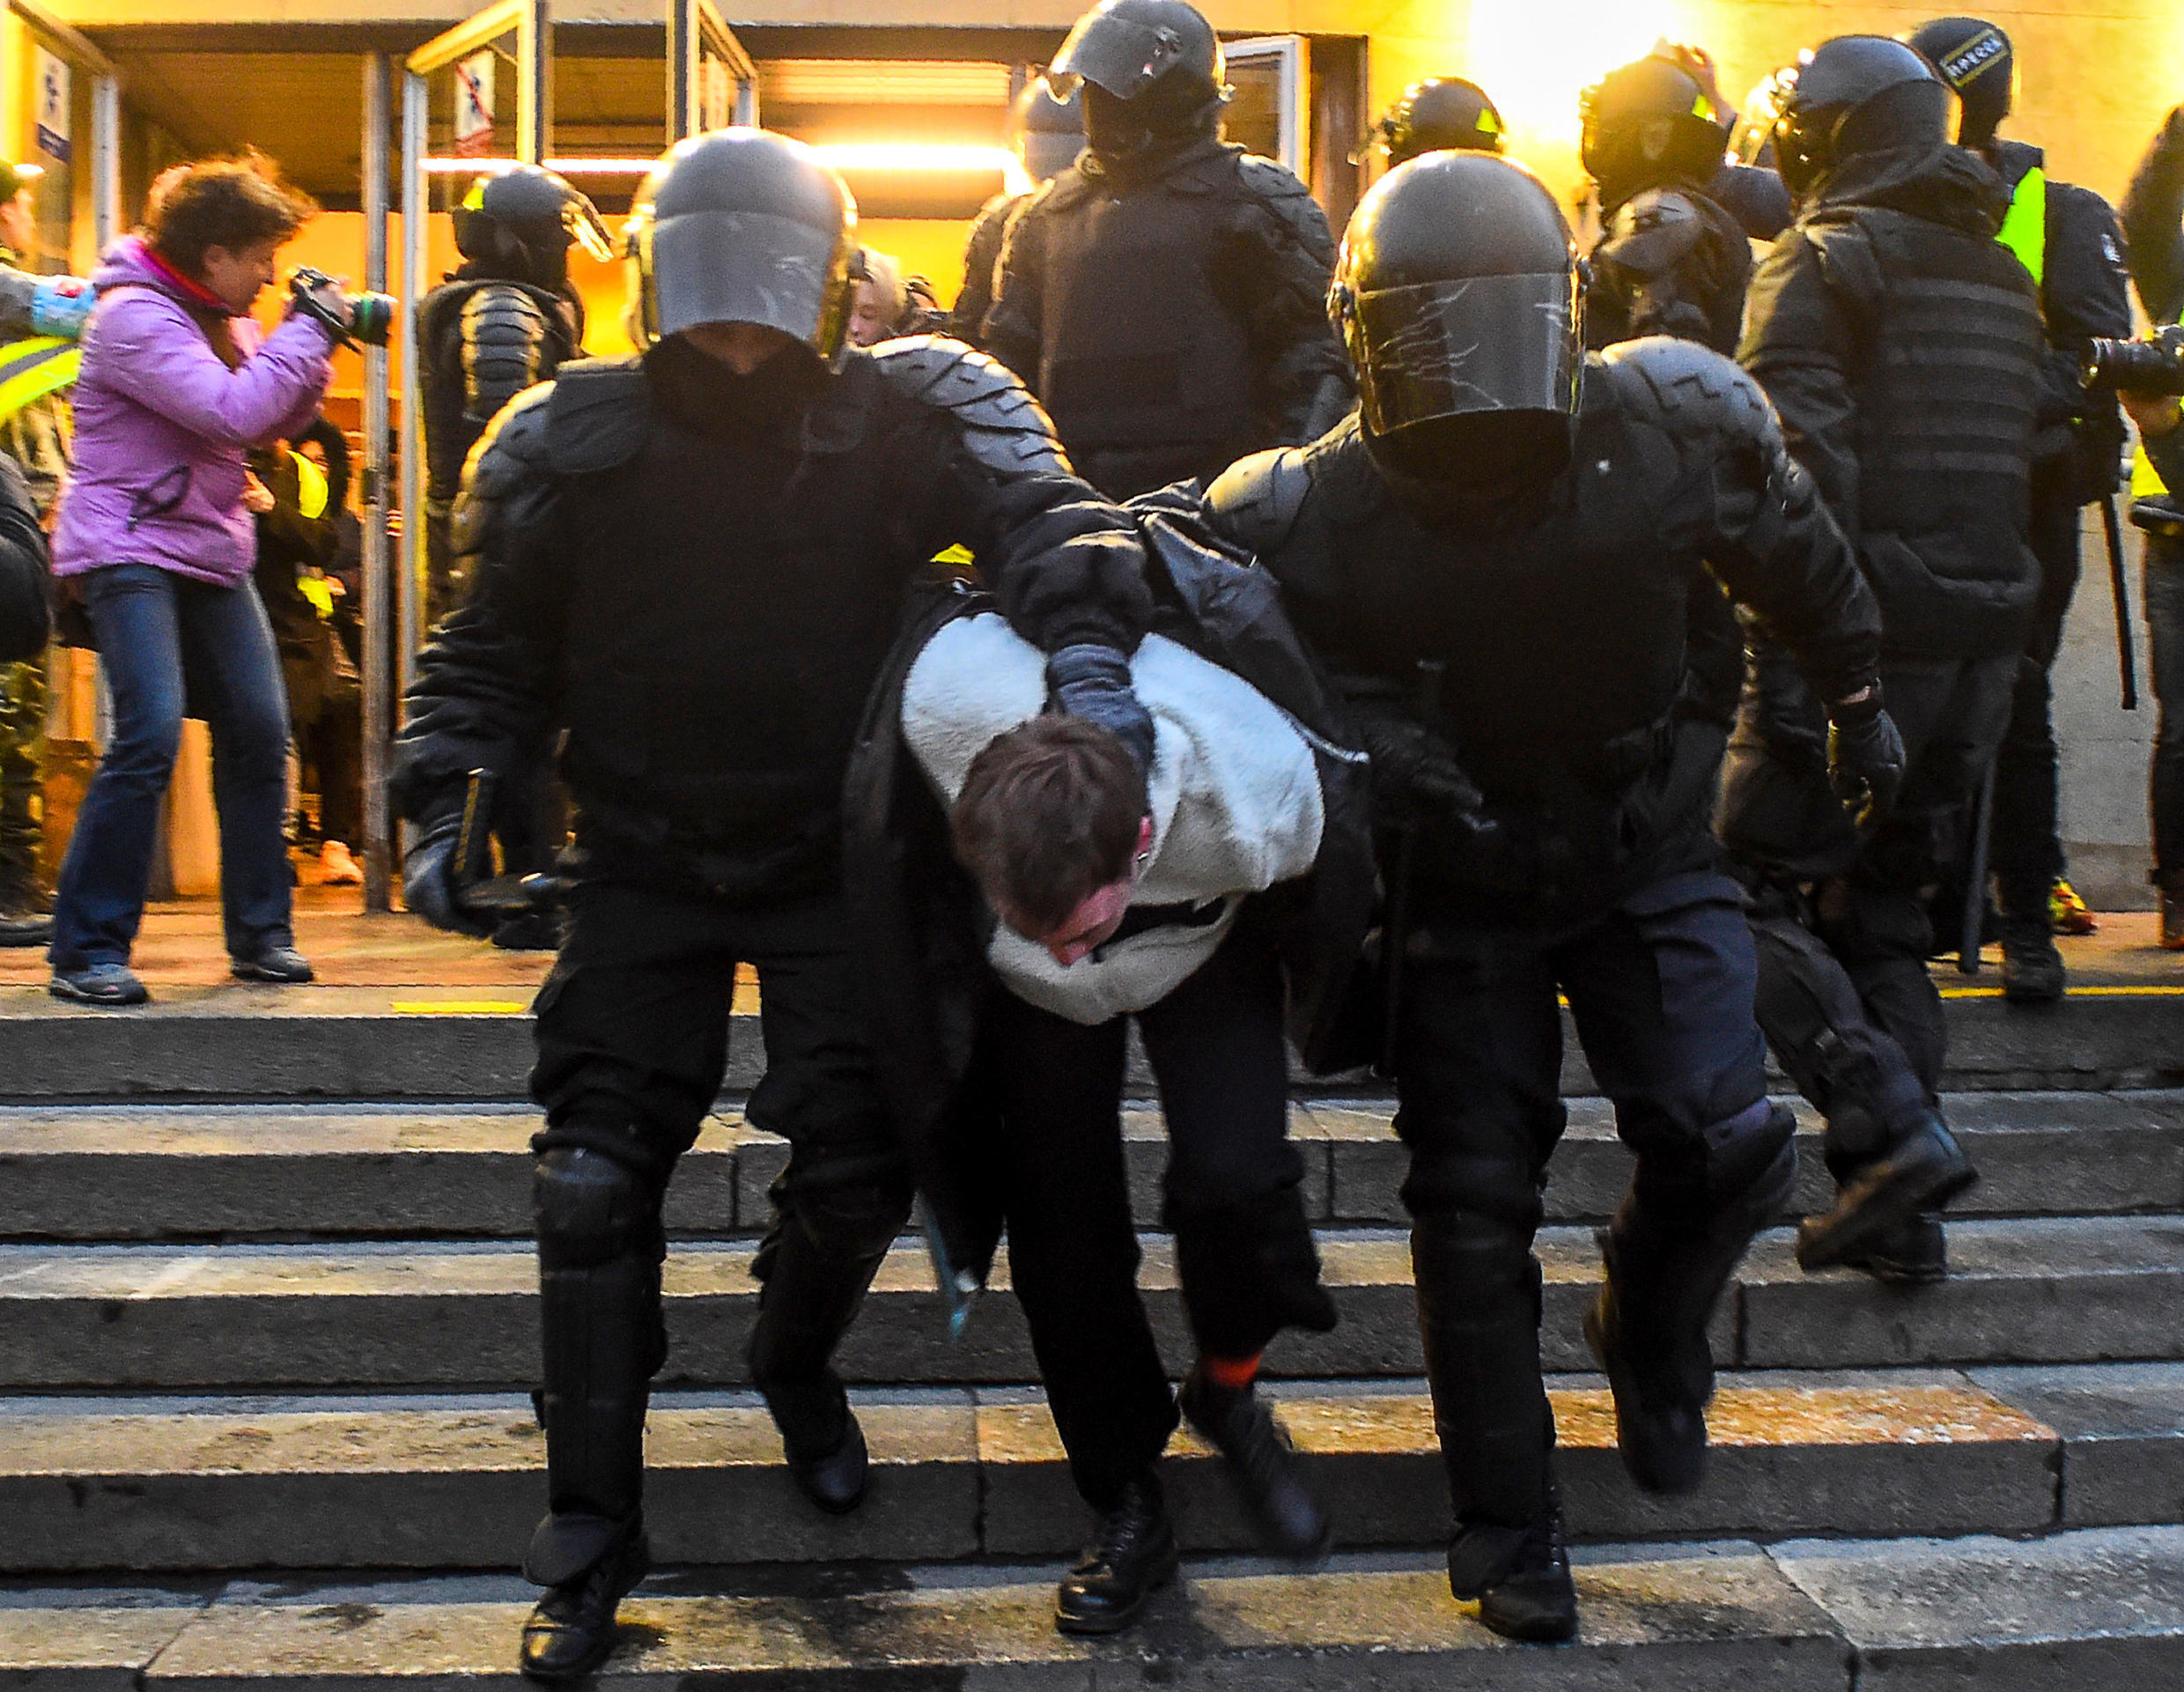 Police officers detain a protester during a rally in support of jailed Kremlin critic Alexei Navalny, in central Saint Petersburg